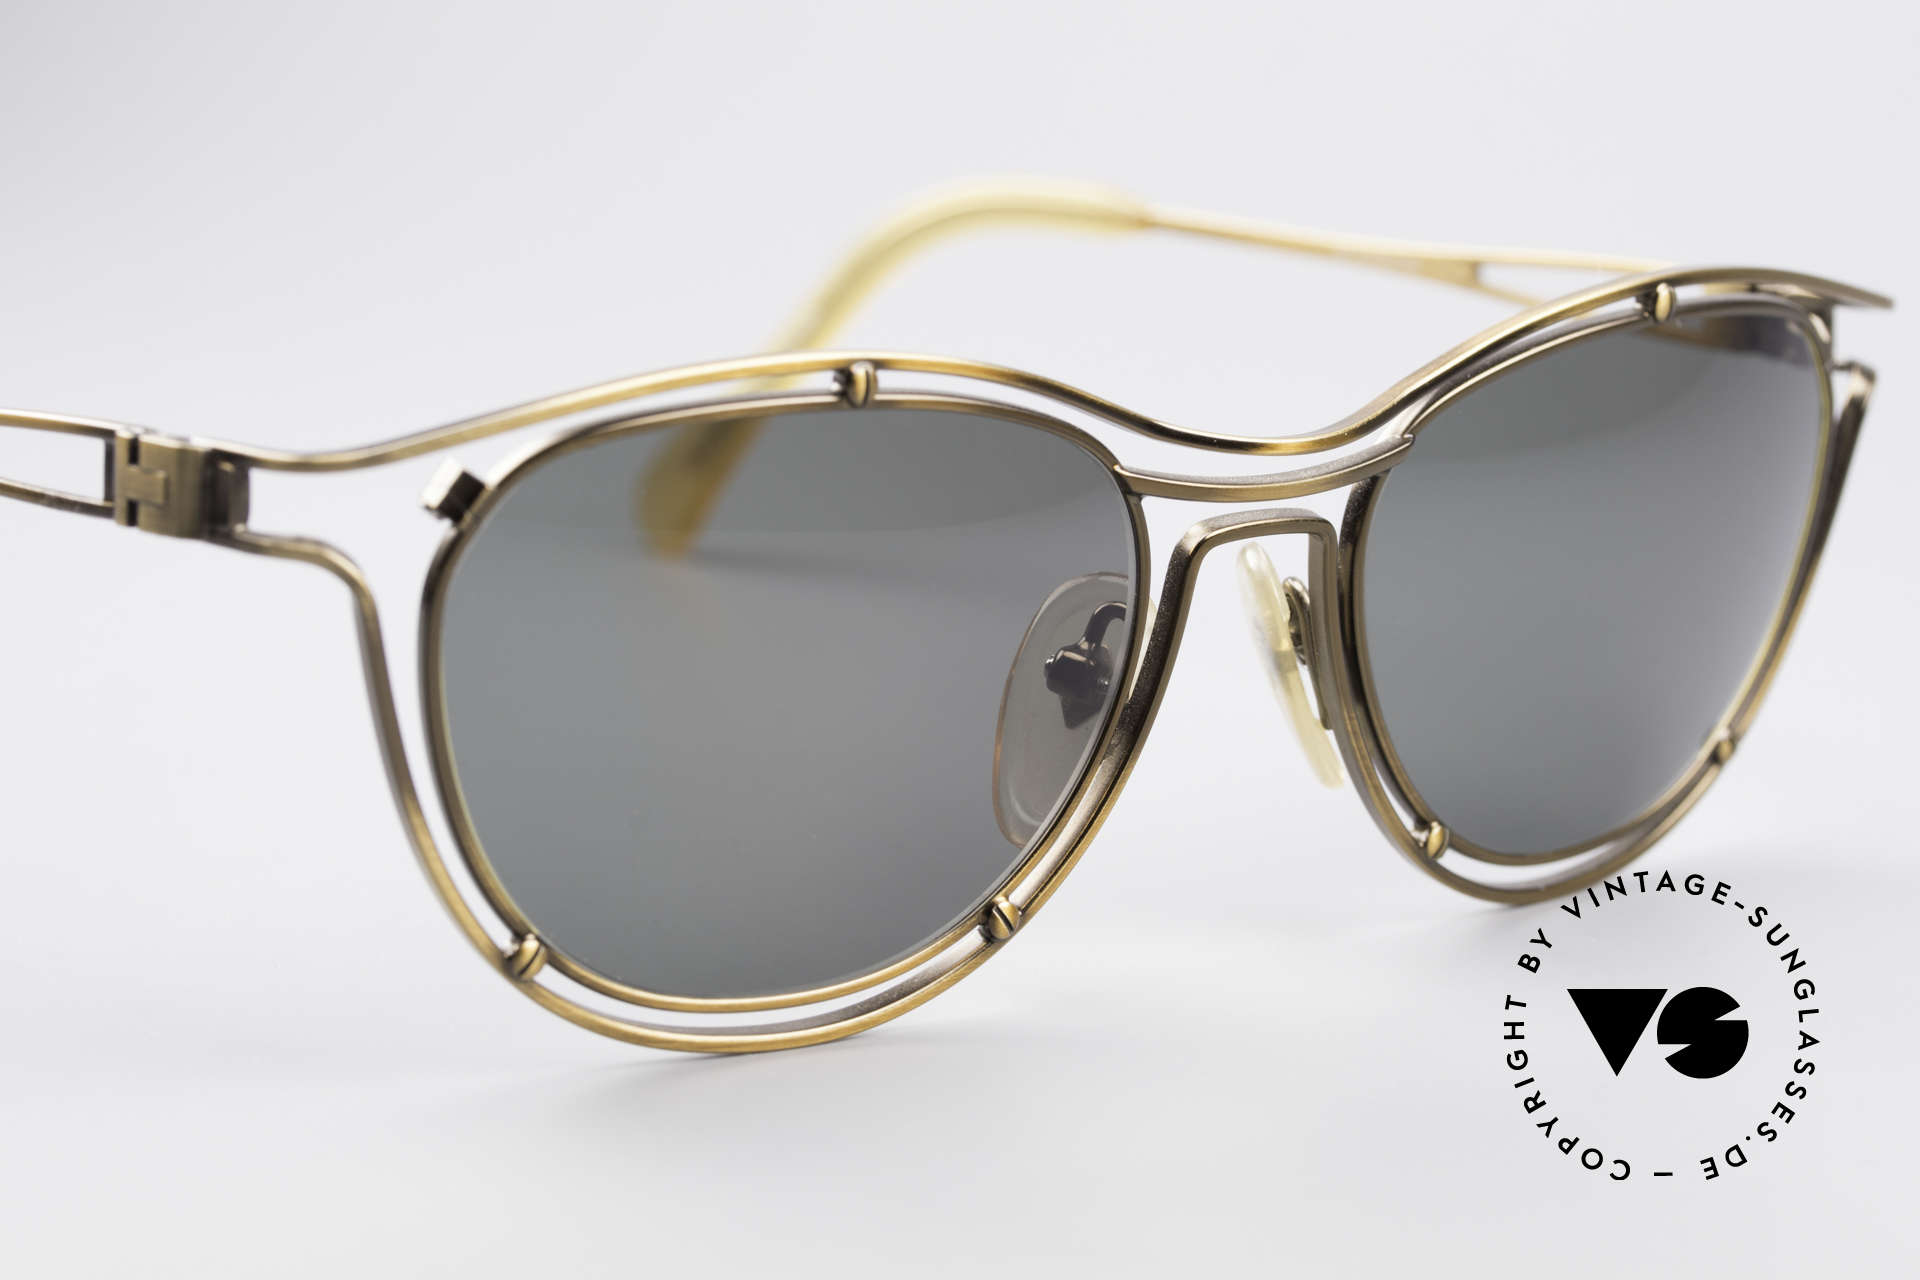 Jean Paul Gaultier 56-2176 Rare Designer Sunglasses, unworn (like all our old 90's designer sunglasses), Made for Men and Women